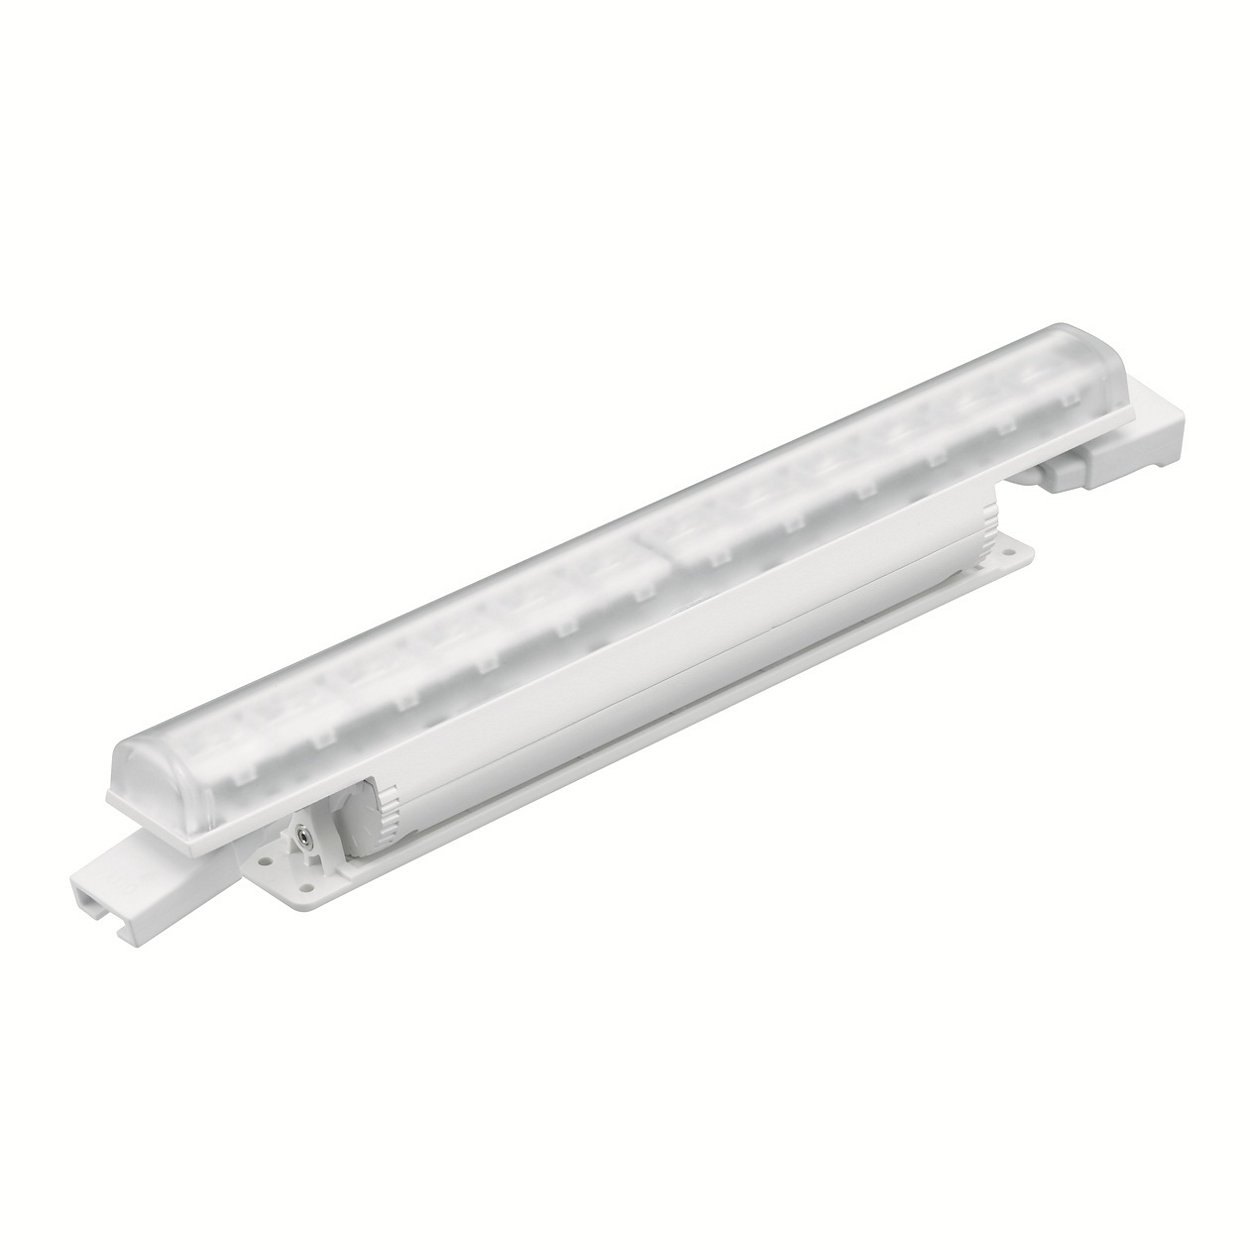 iW Fuse Powercore – Linear interior LED wall grazing luminaire with intelligent white light